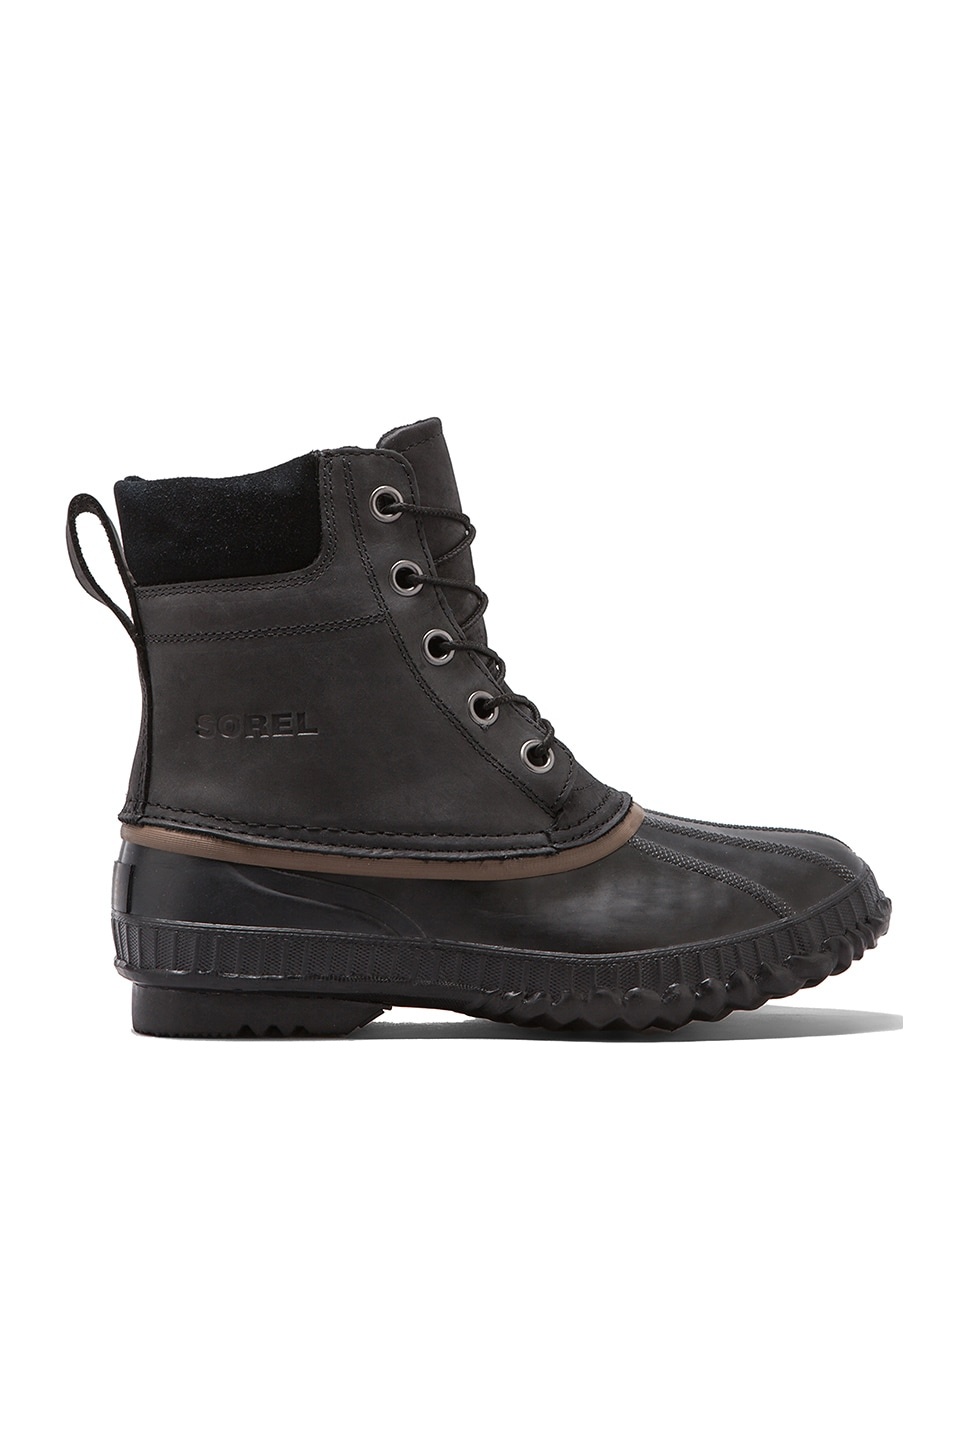 Cheyanne Lace Full Grain by Sorel